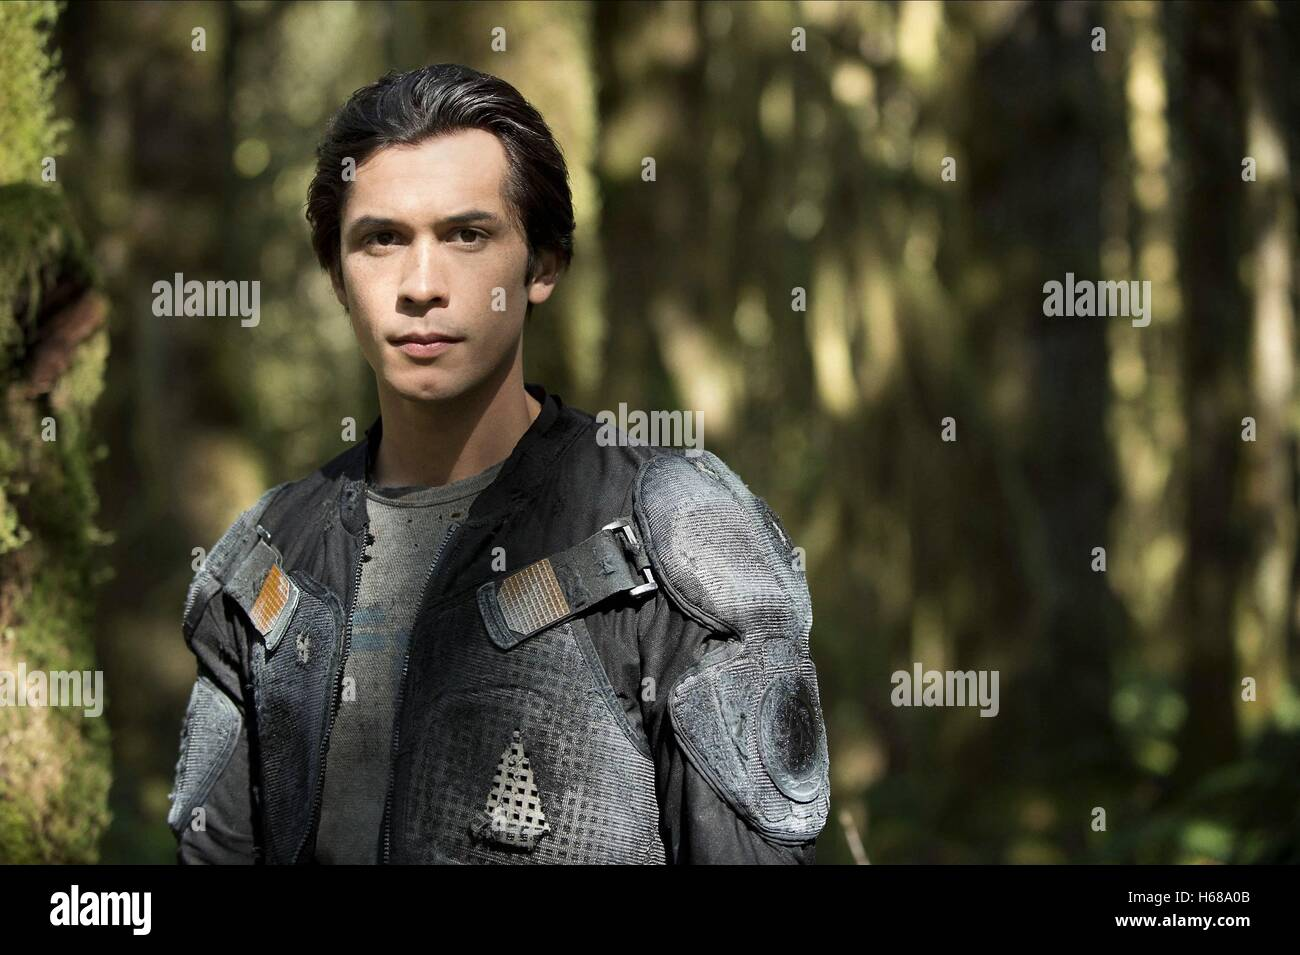 BOB MORLEY THE HUNDRED; THE 100 (2014) - Stock Image